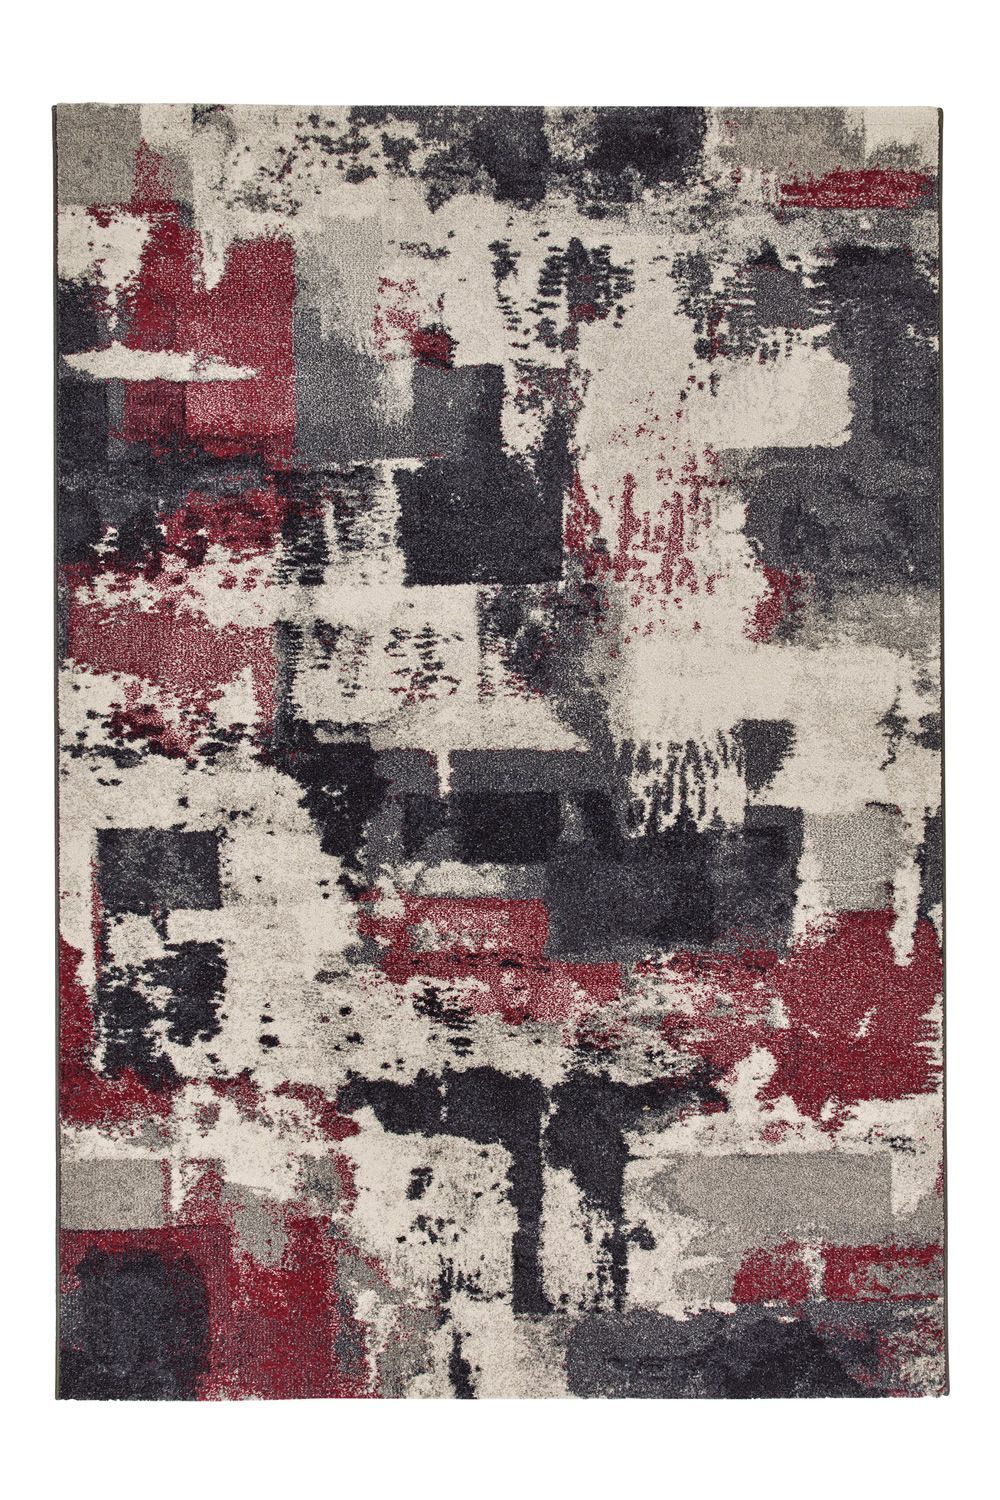 Contemporary rug, red version